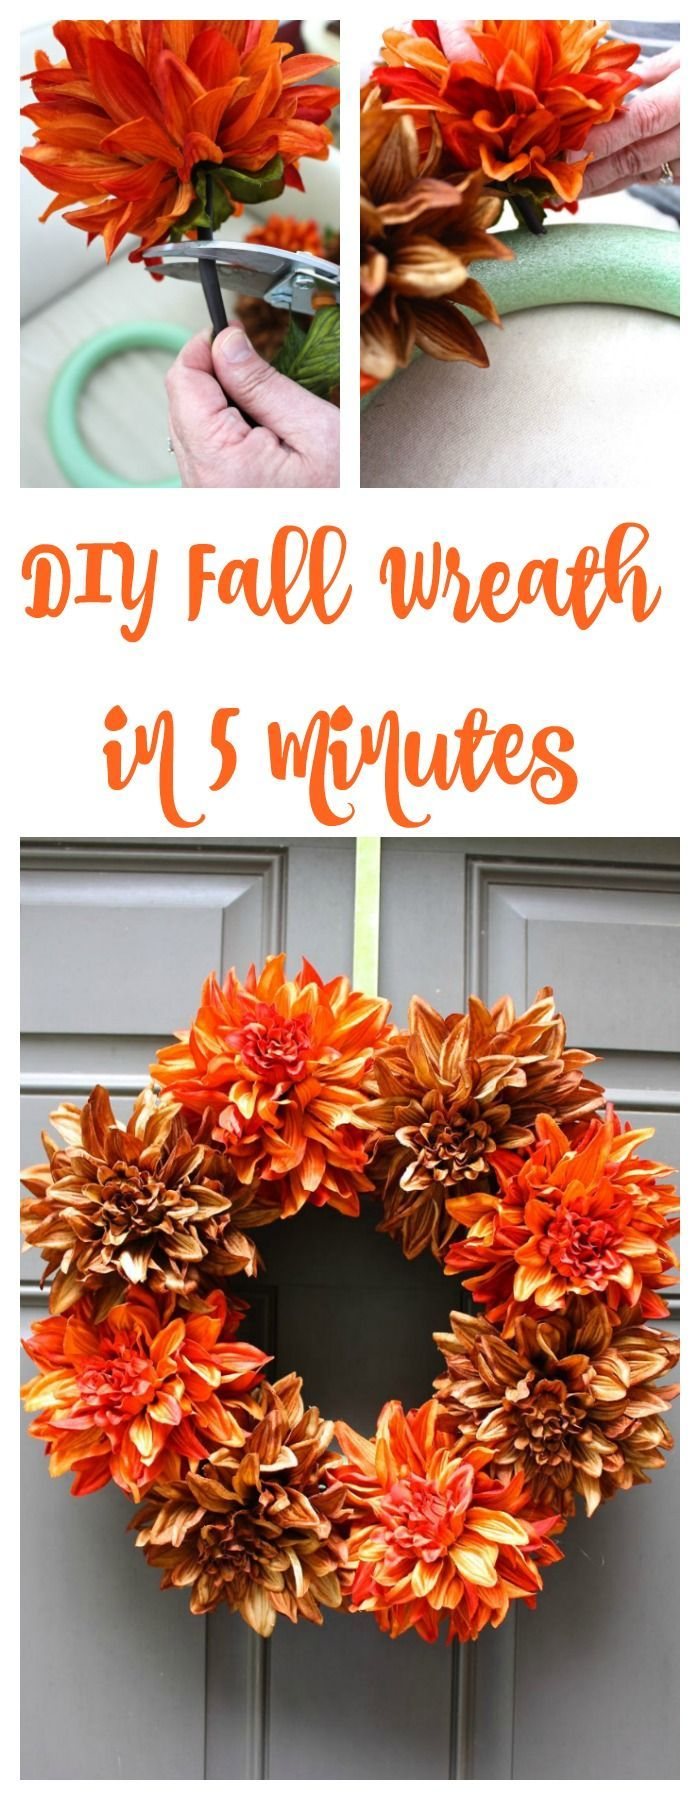 Black dress ideas for fall decorating